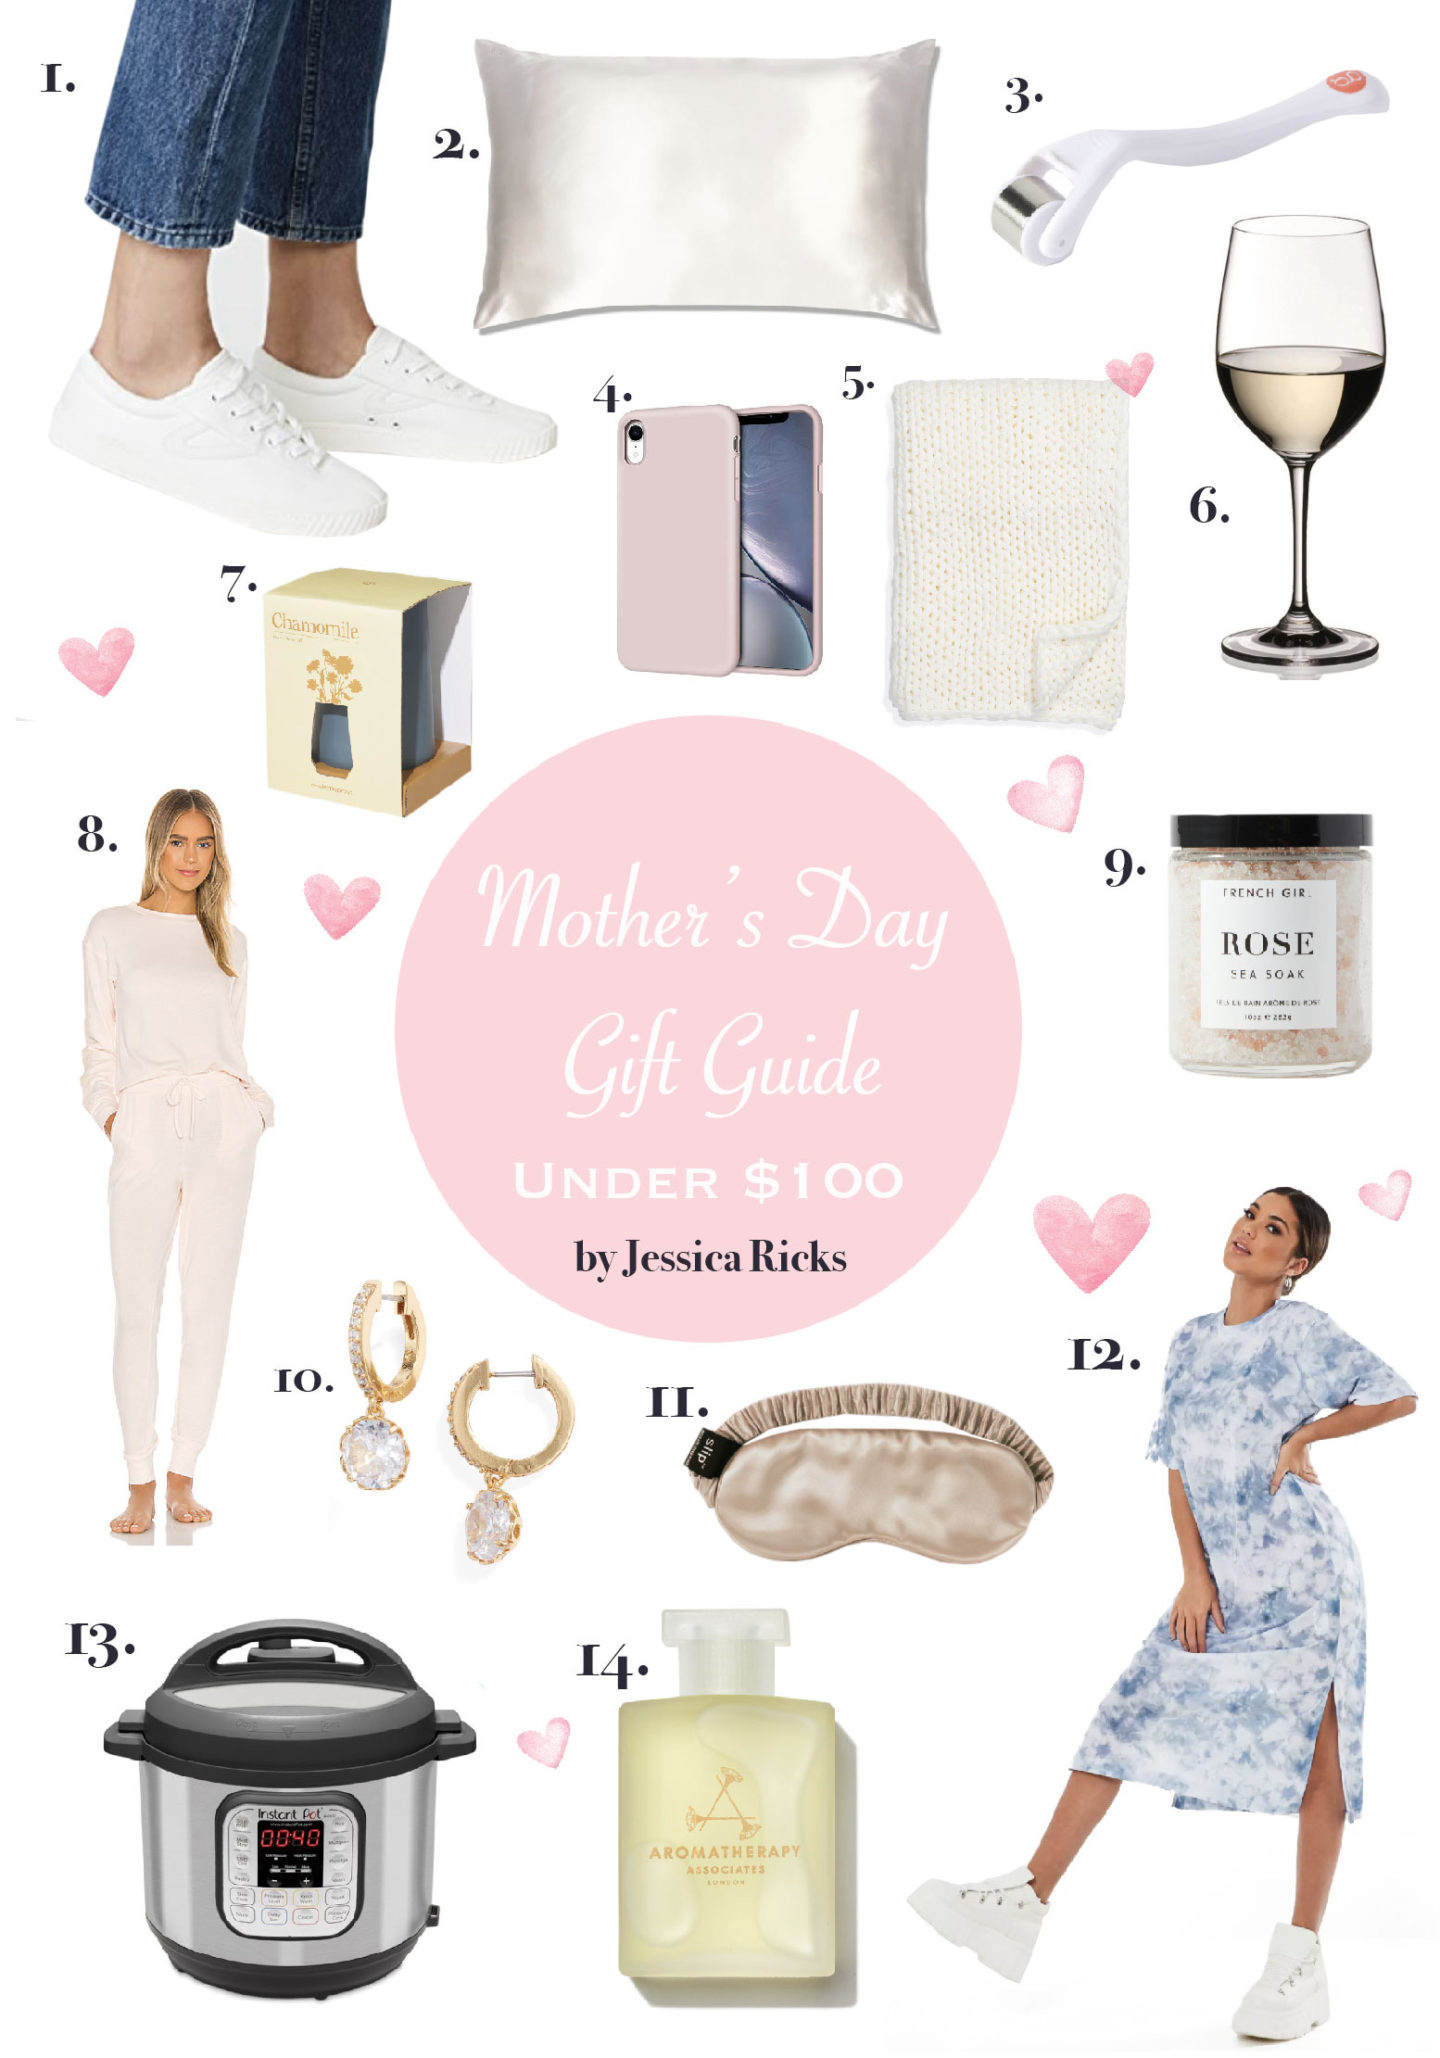 mothers day gift guide, gift ideas for mom, under $100, sleepwear, instapot, phone case, sneakers, dress, aromatherapy, wine glass